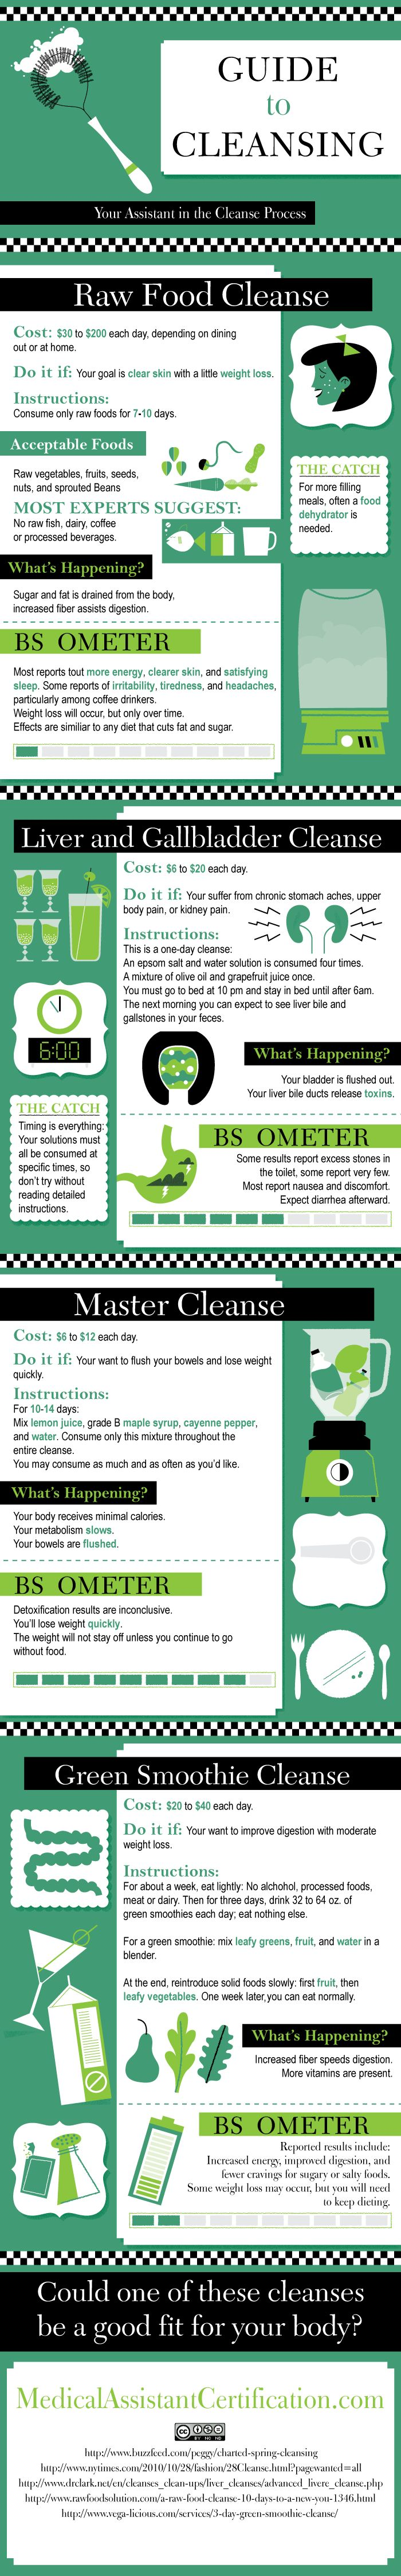 INFOGRAPHICS: A Guide to Cleansing www.greennutrilabs.com